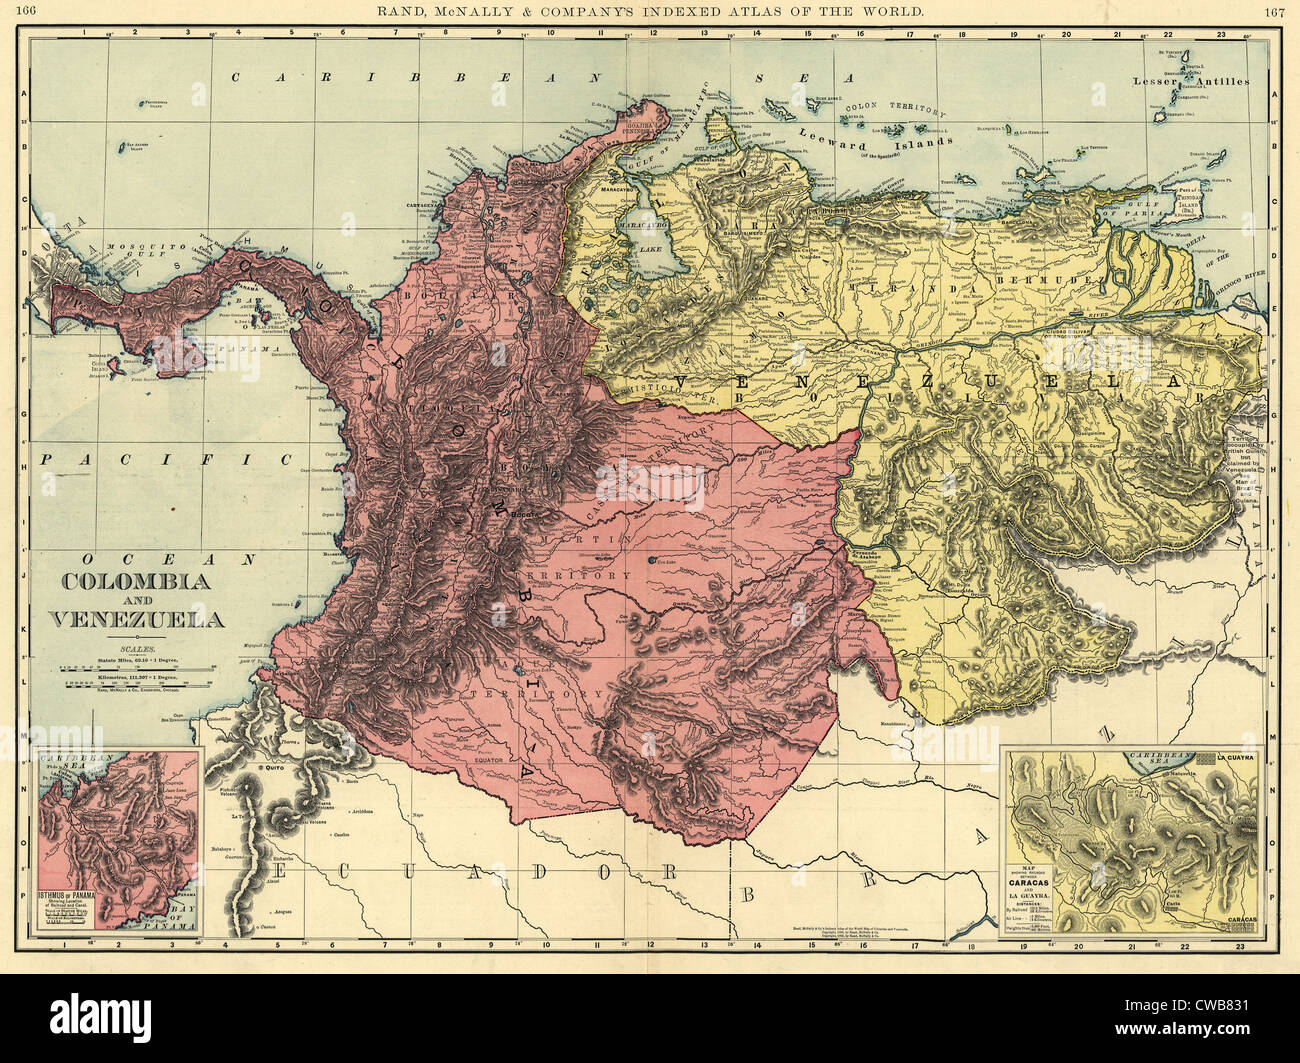 Map of Colombia and Venezuela ca 1898